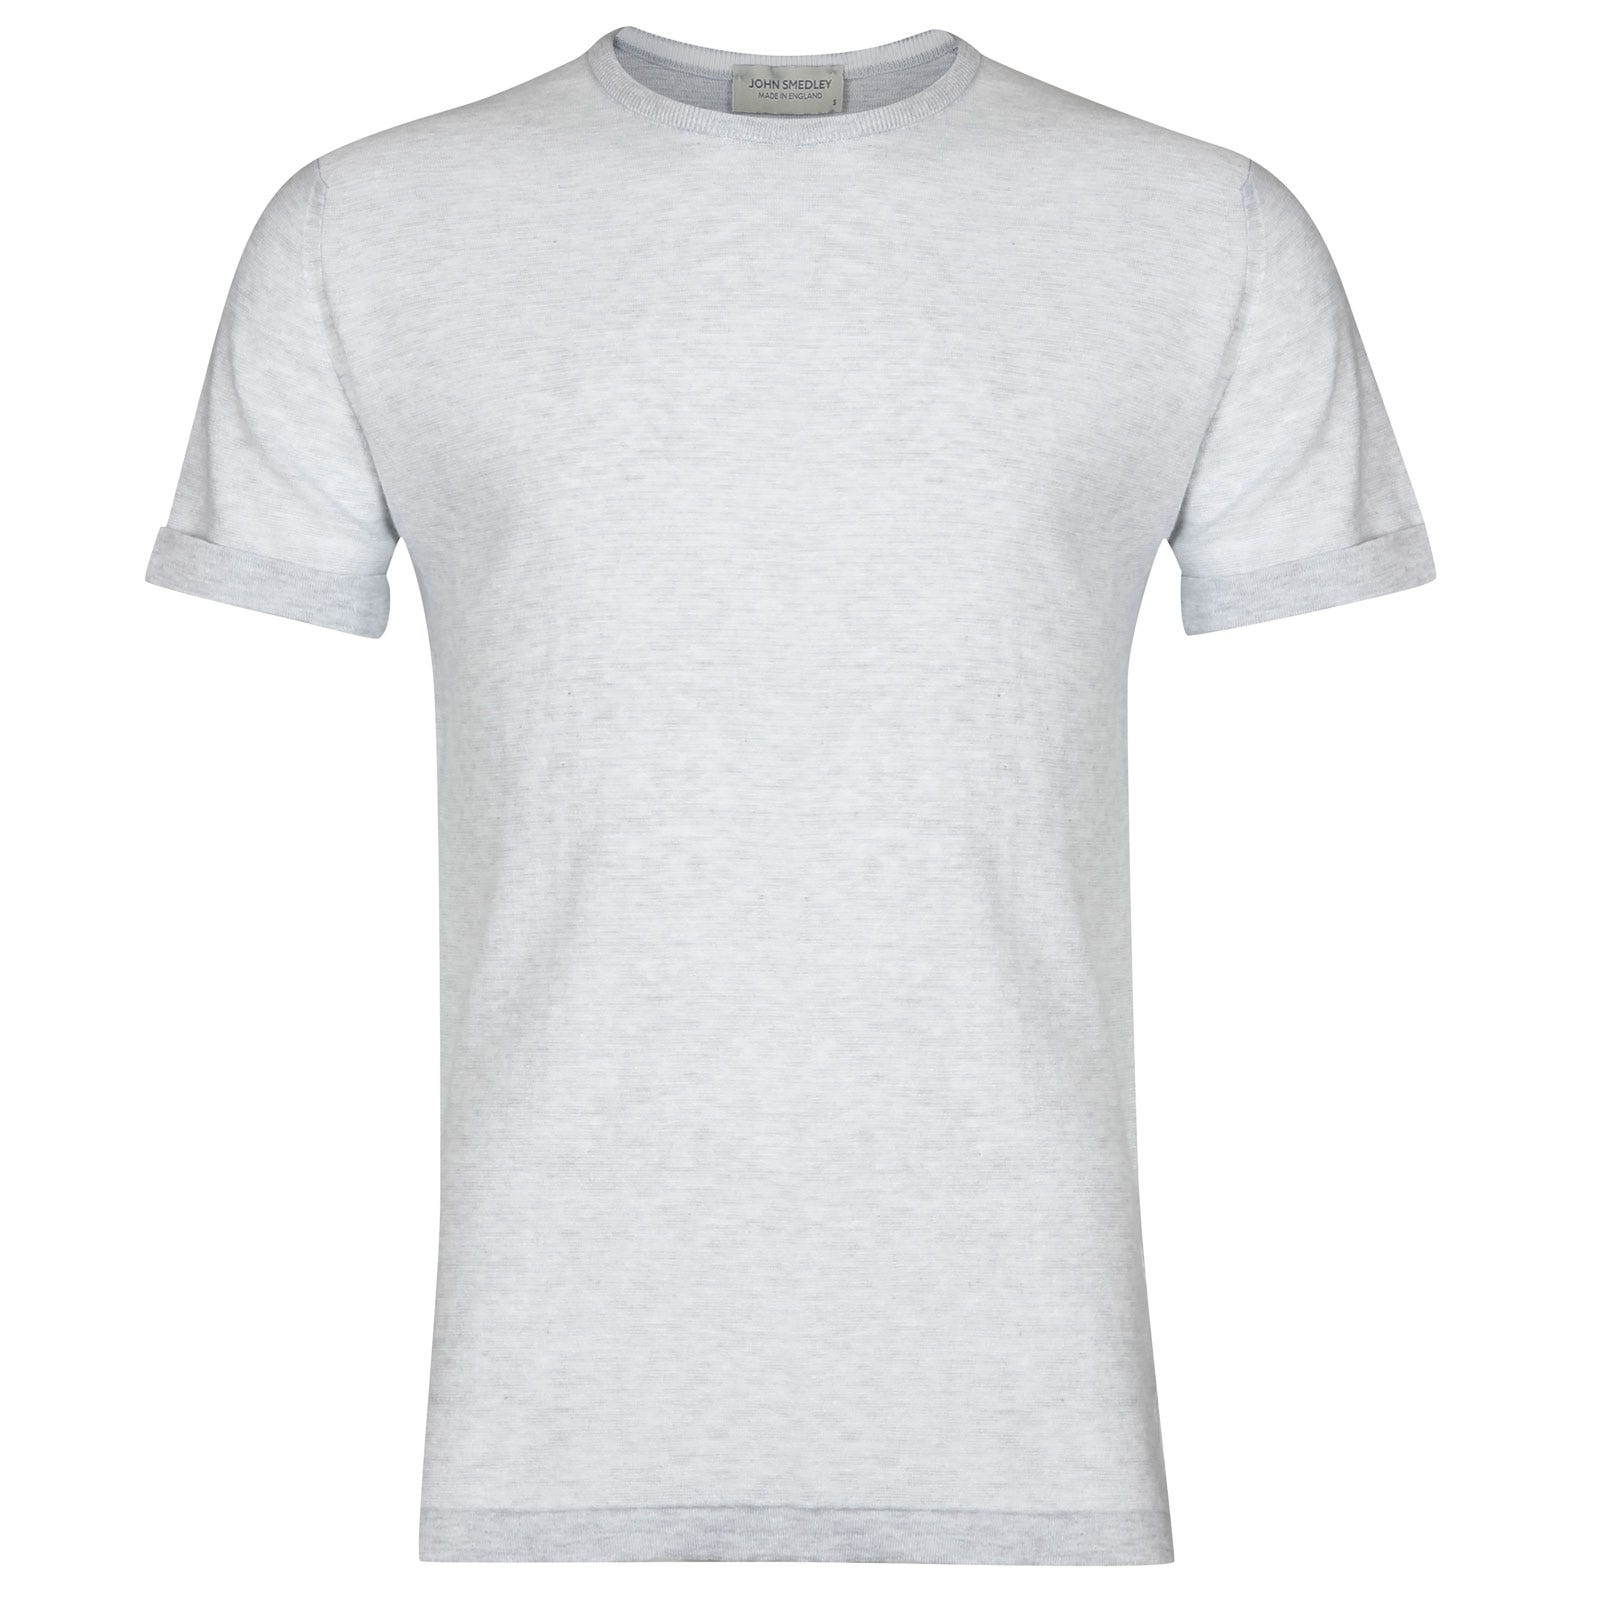 John Smedley benhope Sea Island Cotton T-shirt in Feather